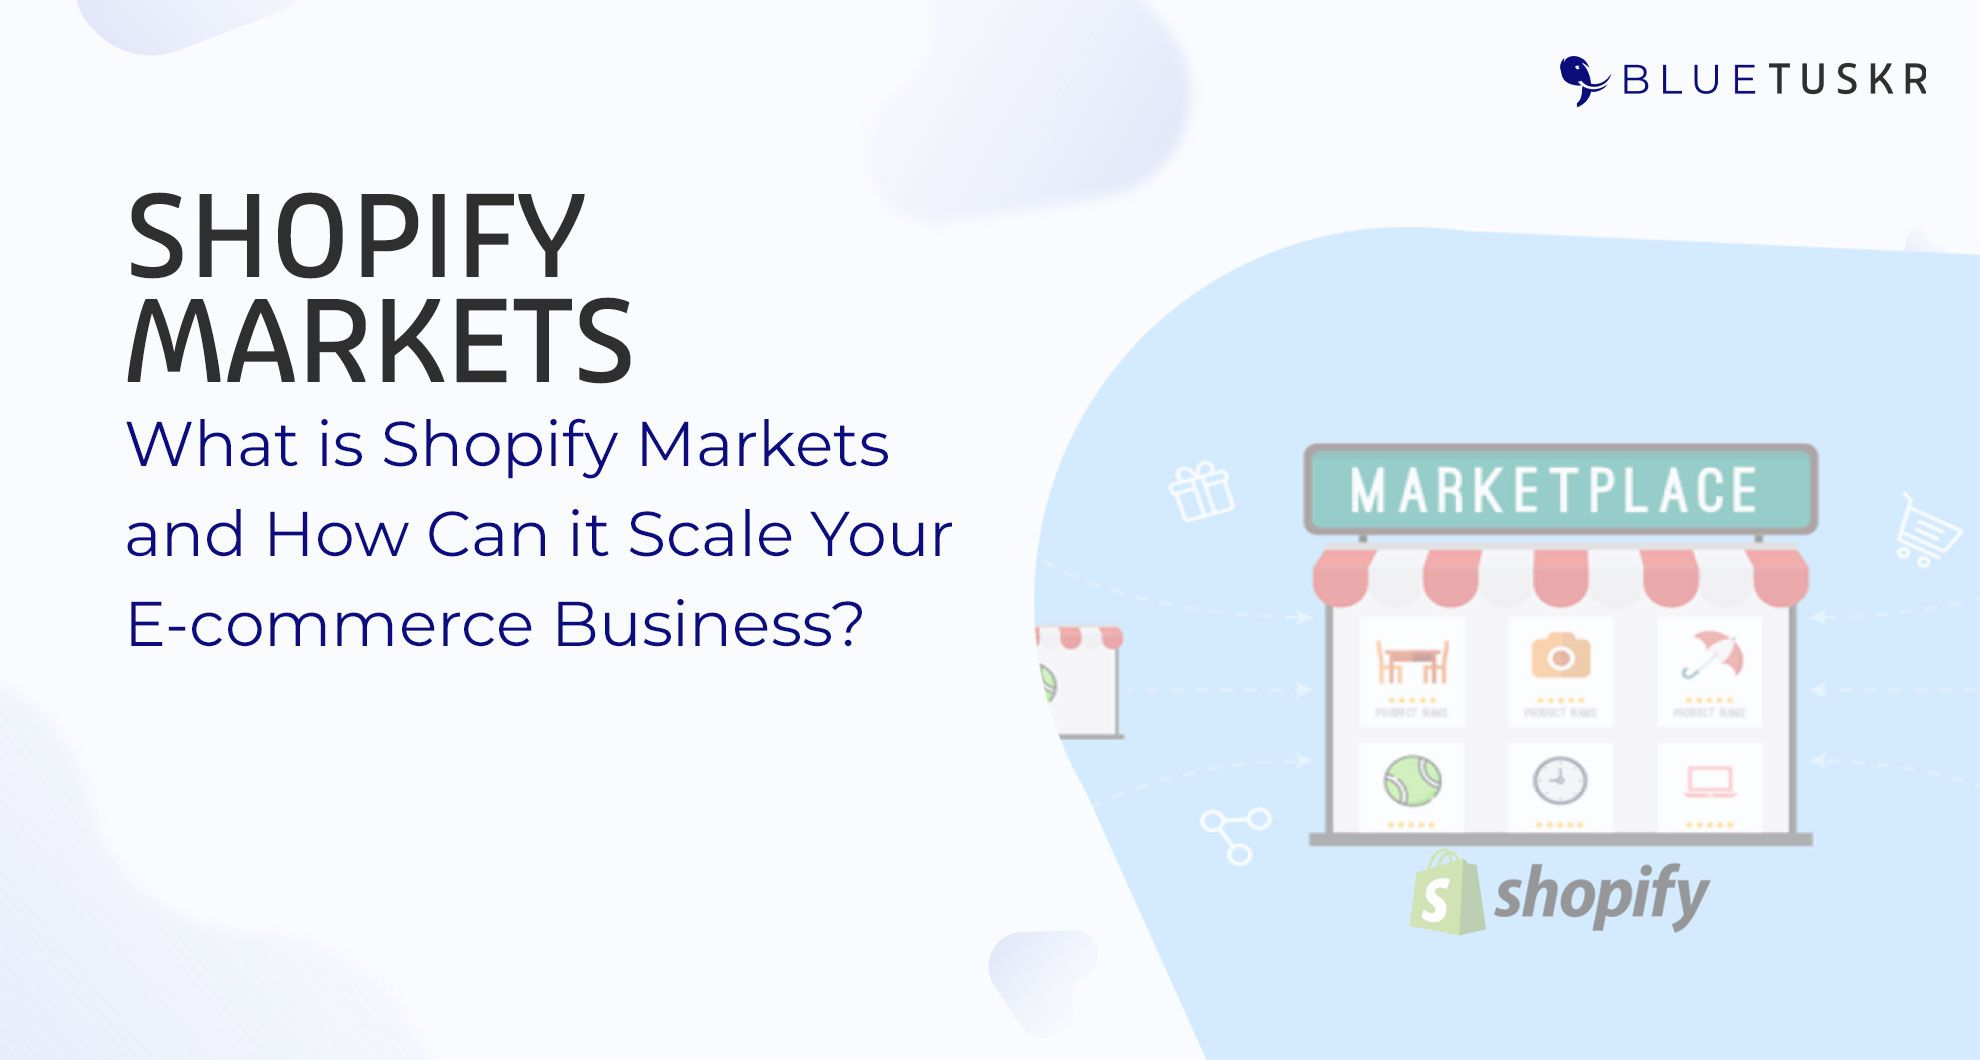 What is Shopify Markets and How Can it Scale Your E-commerce Business?